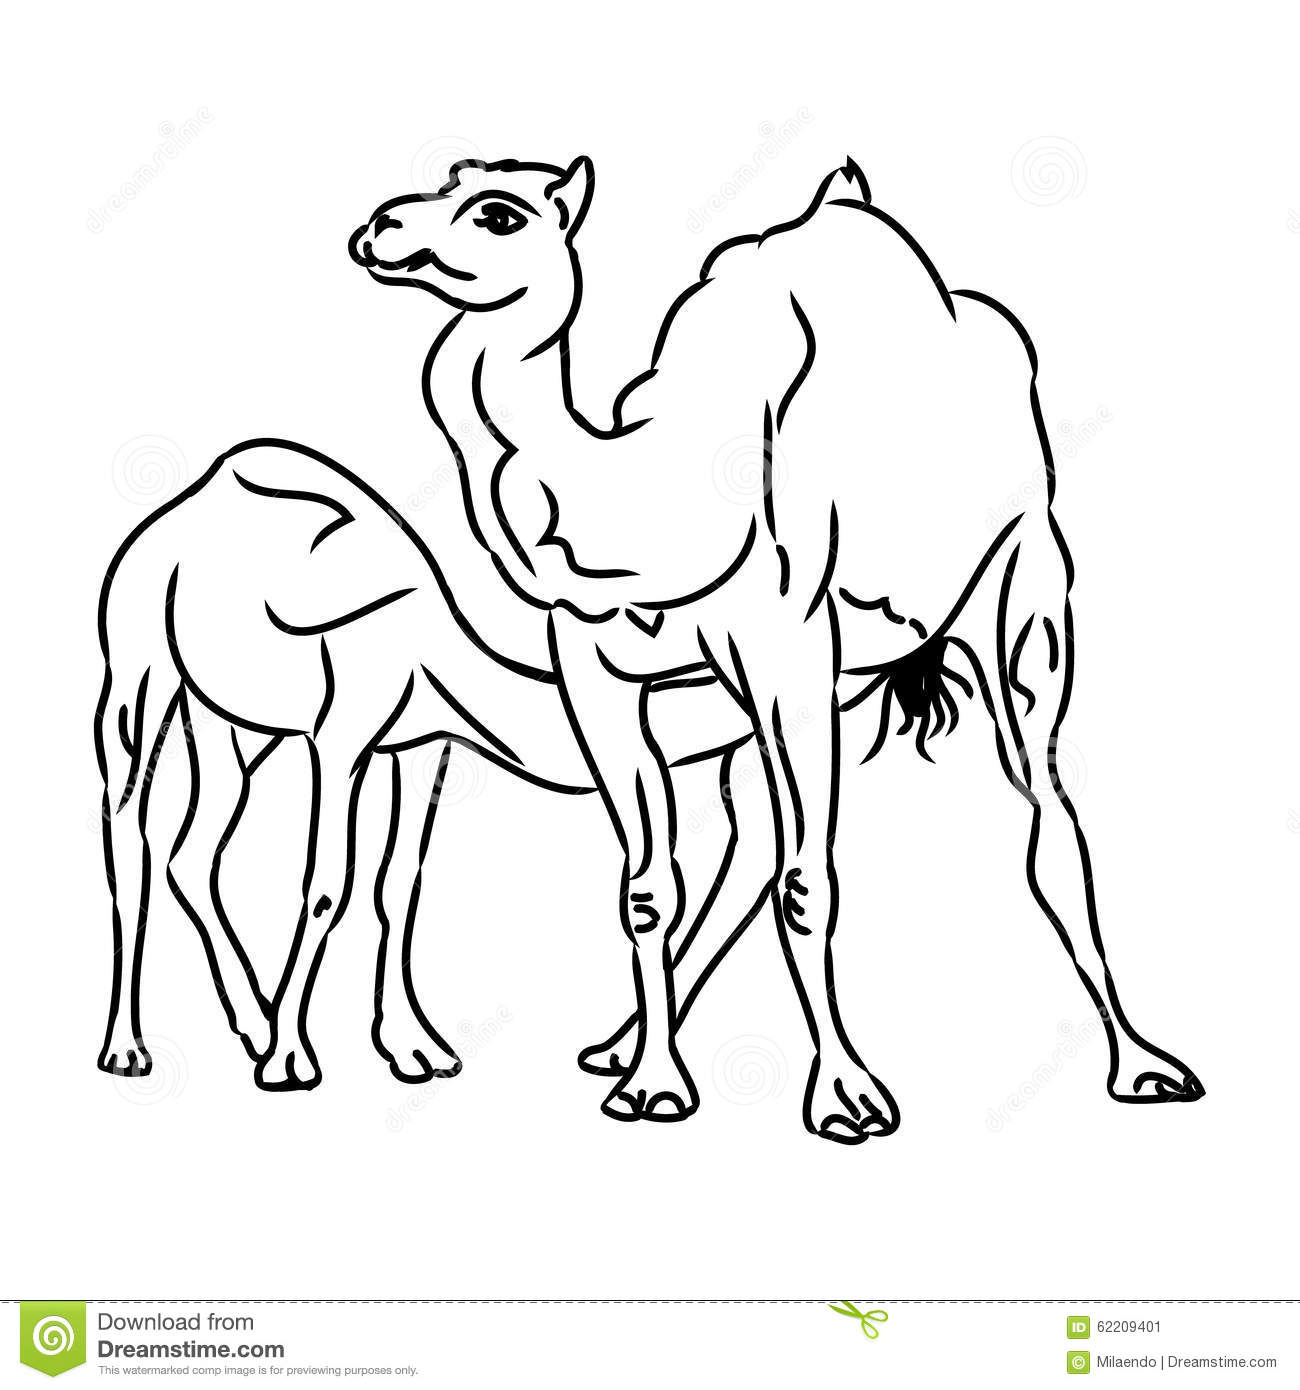 Camel And Camel Simple Sketch Stock Vector